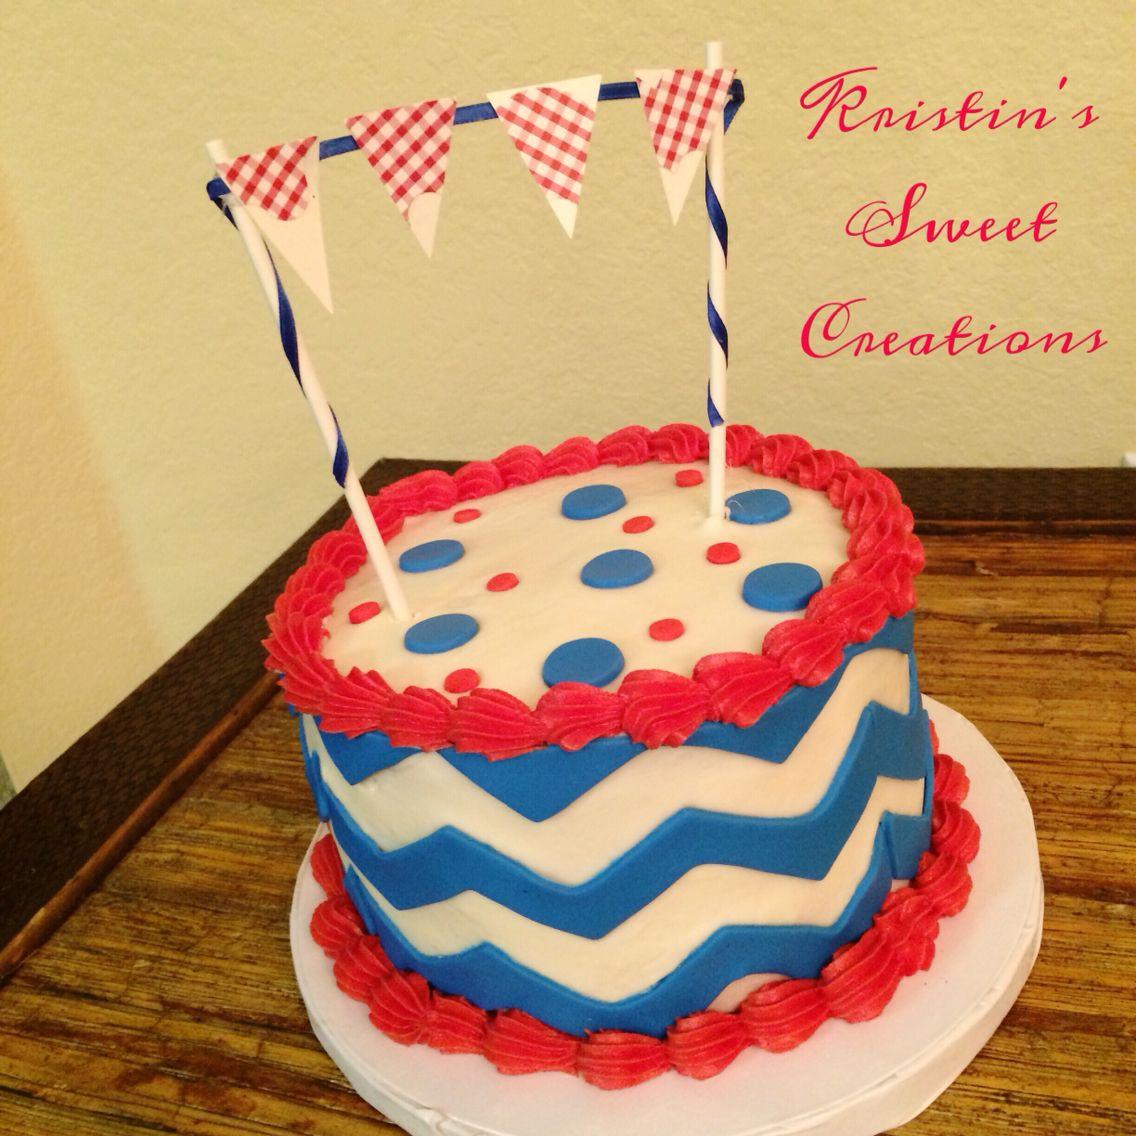 Red white and blue chevron smash cake Kristins Sweet Creations